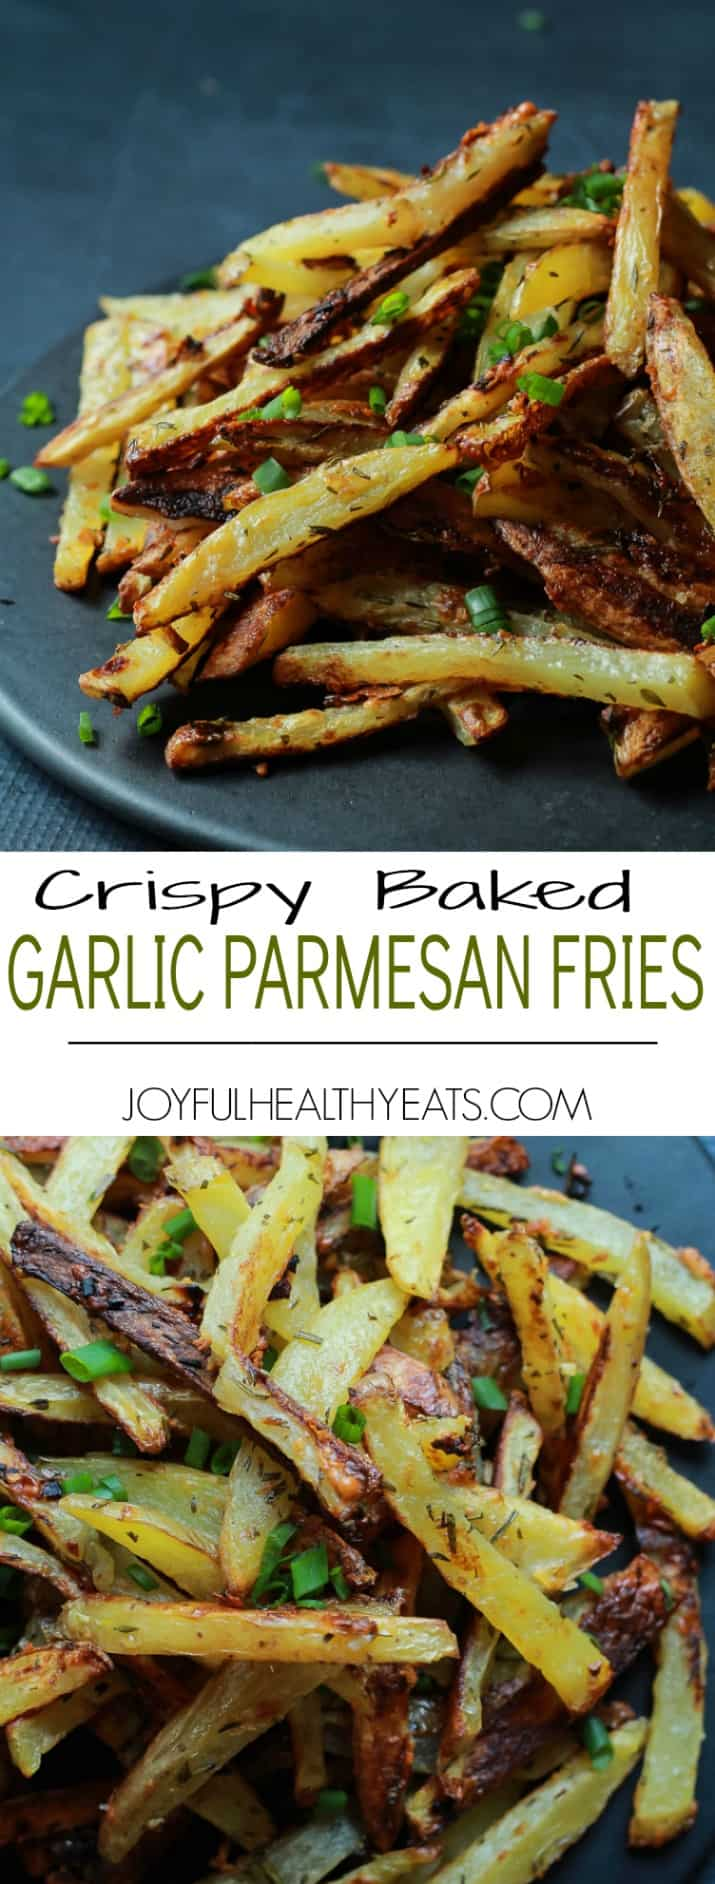 Collage for Crispy Baked Garlic Parmesan Fries recipe